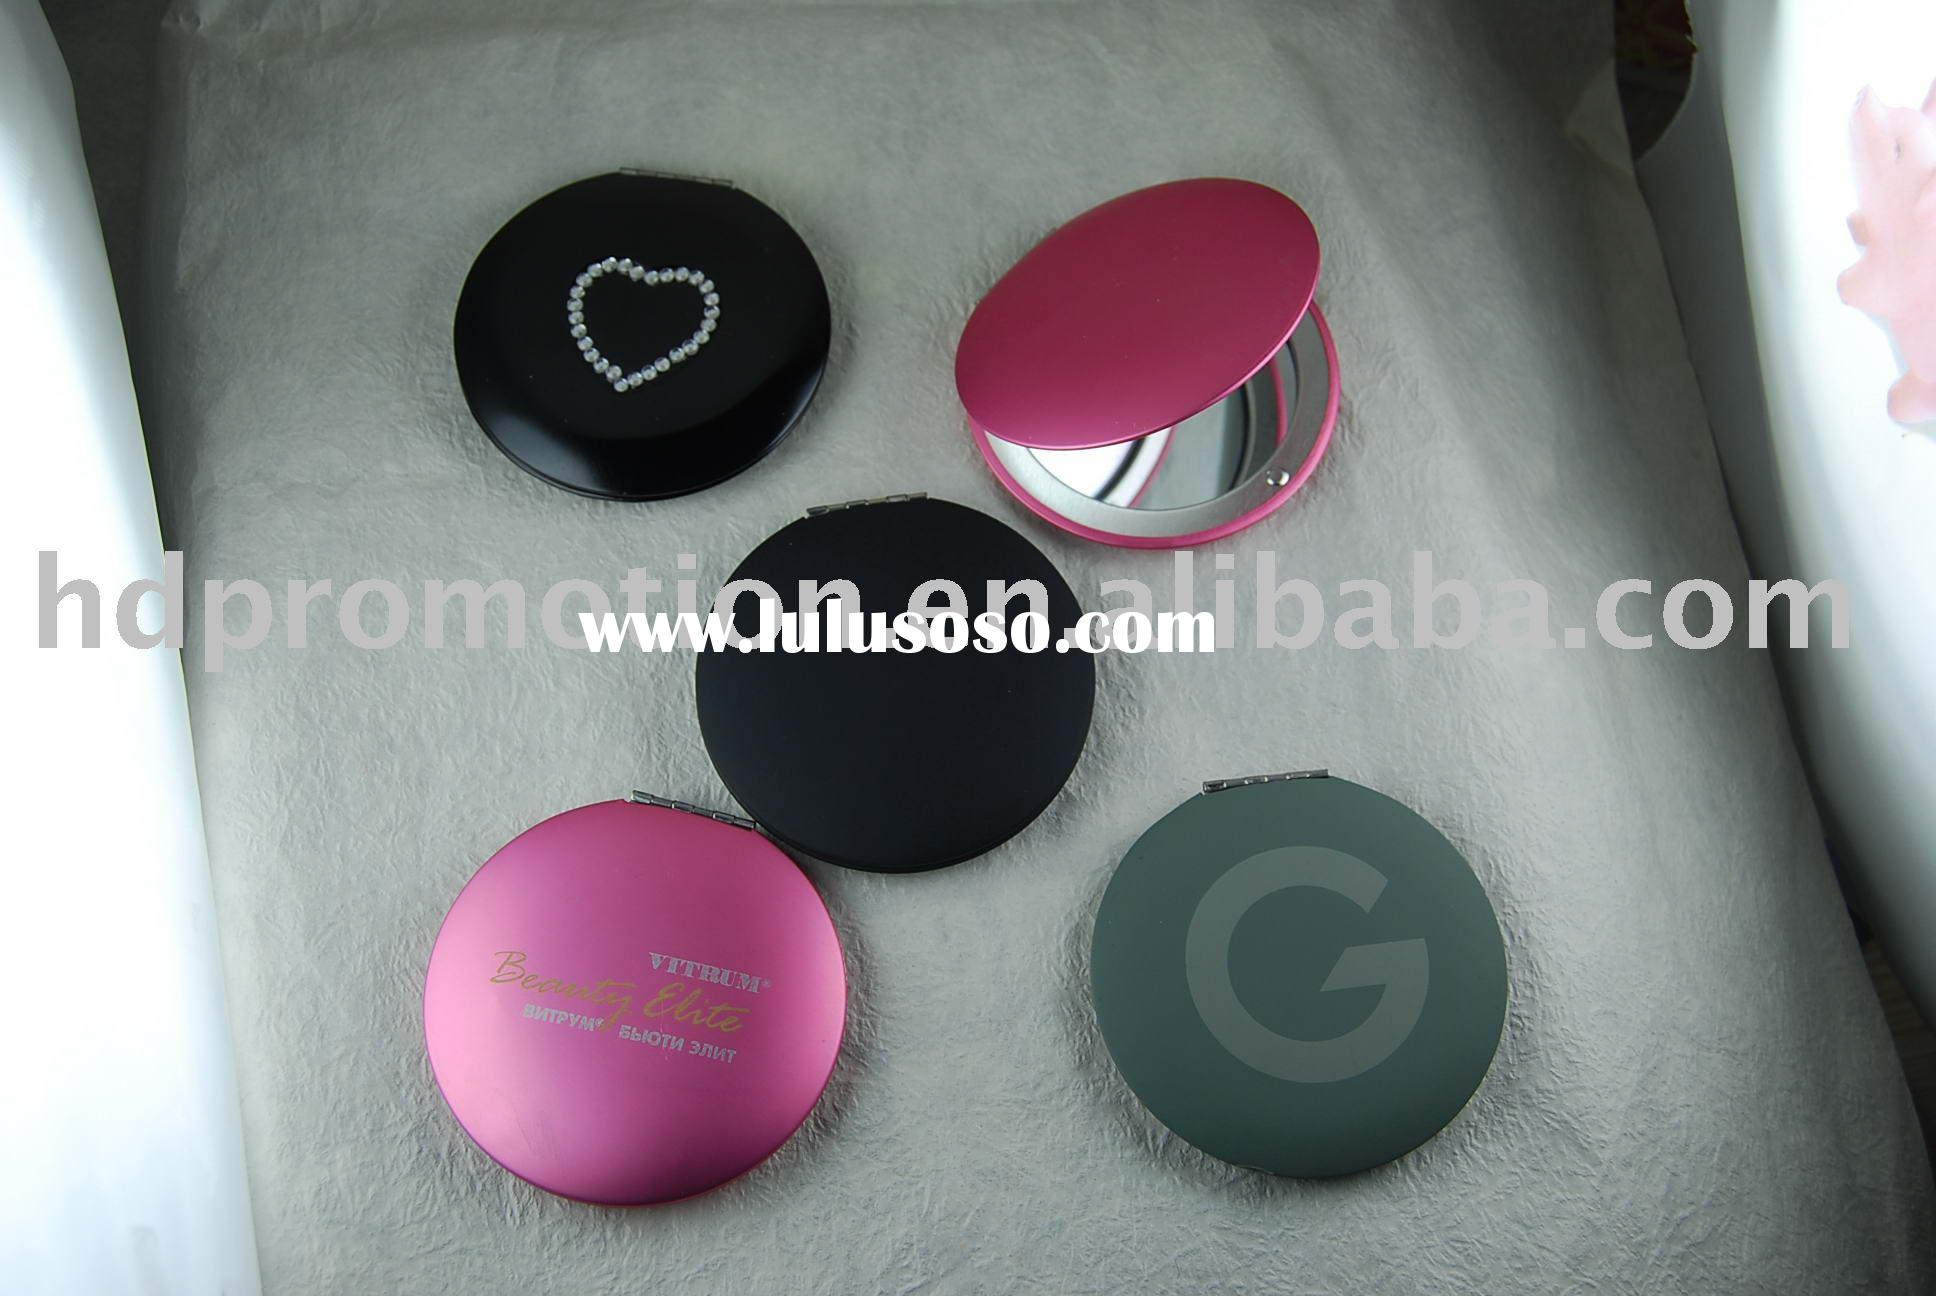 Double side round shape Metal Pocket Mirror